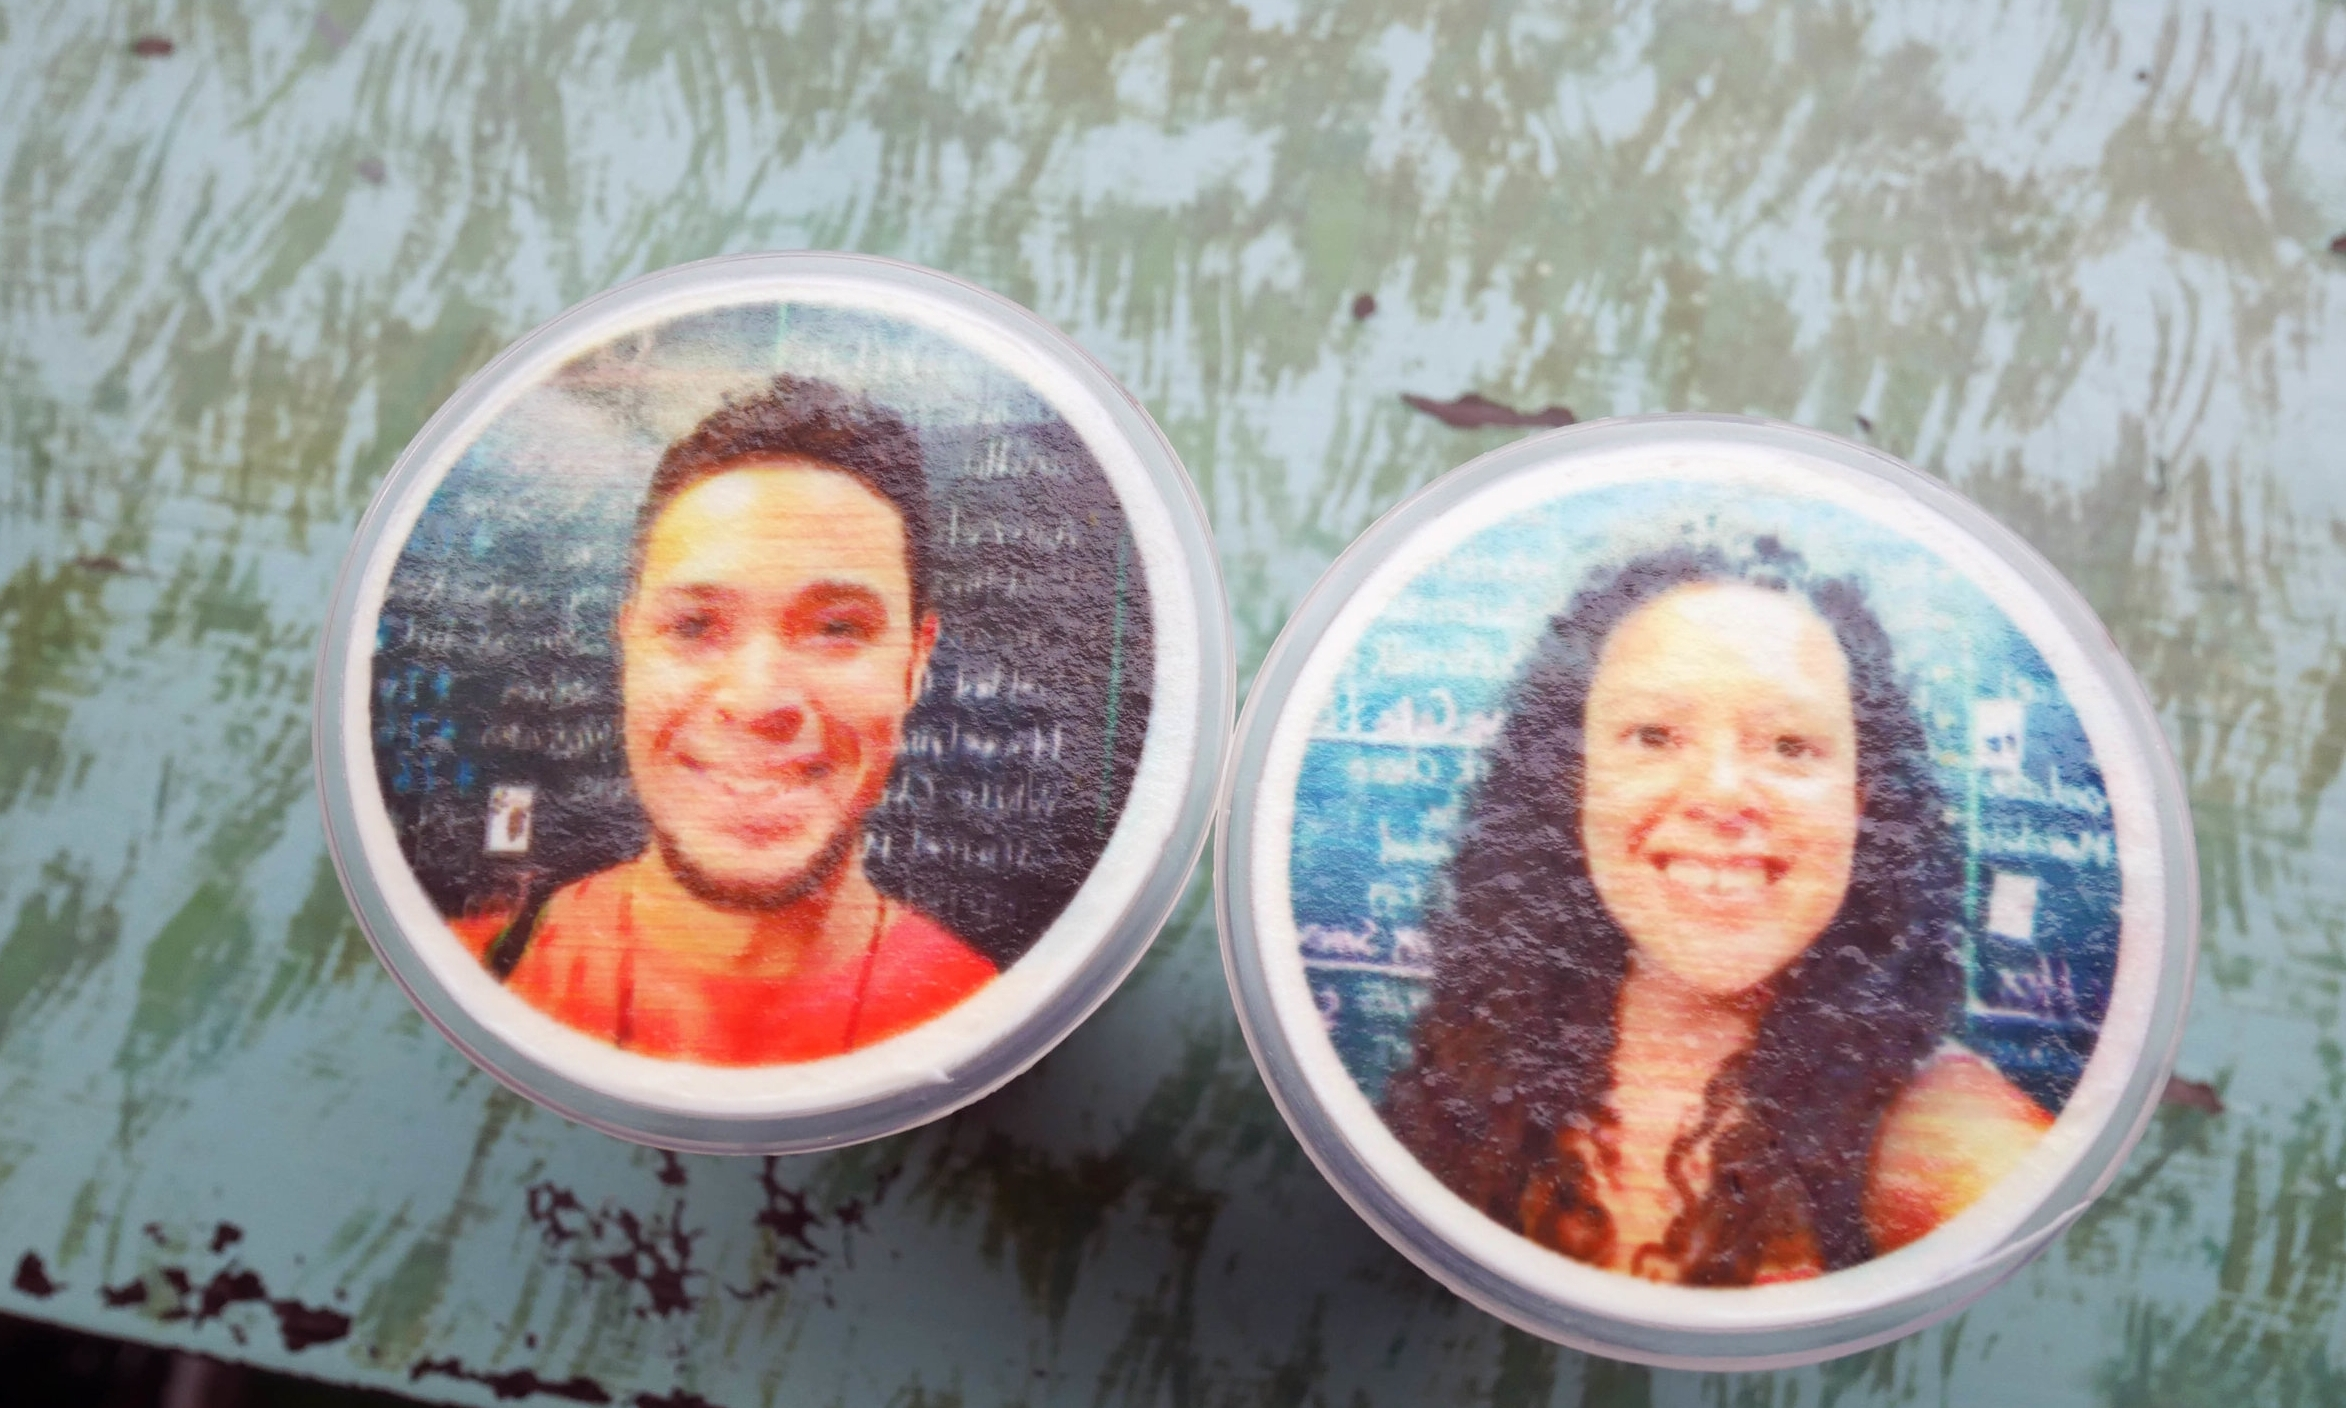 Our selfie coffees